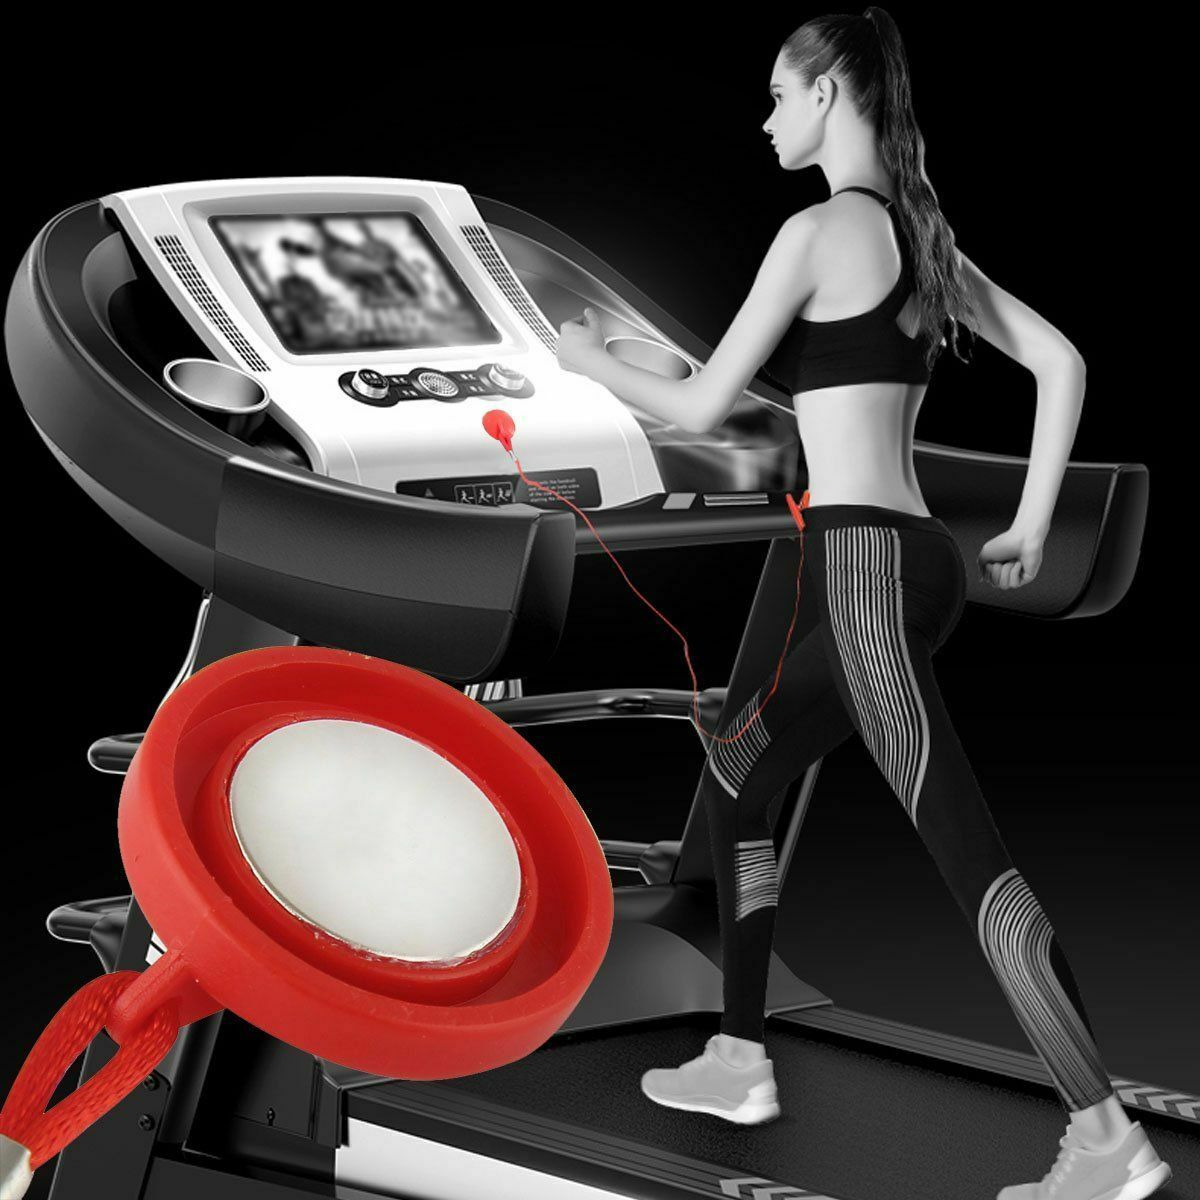 Safety Universal Sports Running Machine Safety Safe Key Treadmill Magnetic Security Switch Lock Red Useful